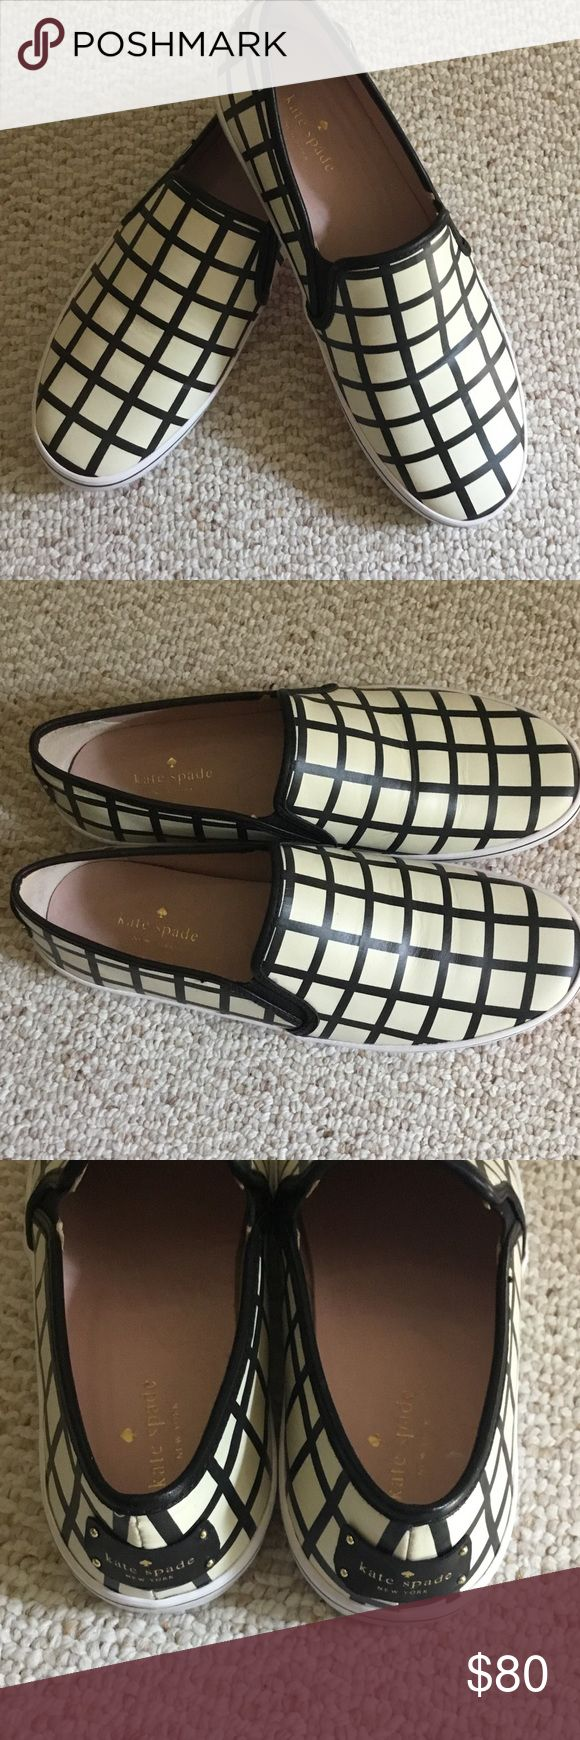 Kate Spade NWOT checkered Slip On Sneakers...10/M Kate Spade NWOT.... Only put them on to try on... Checkered leather upper Slip On sneakers Size 10/M kate spade Shoes Sneakers